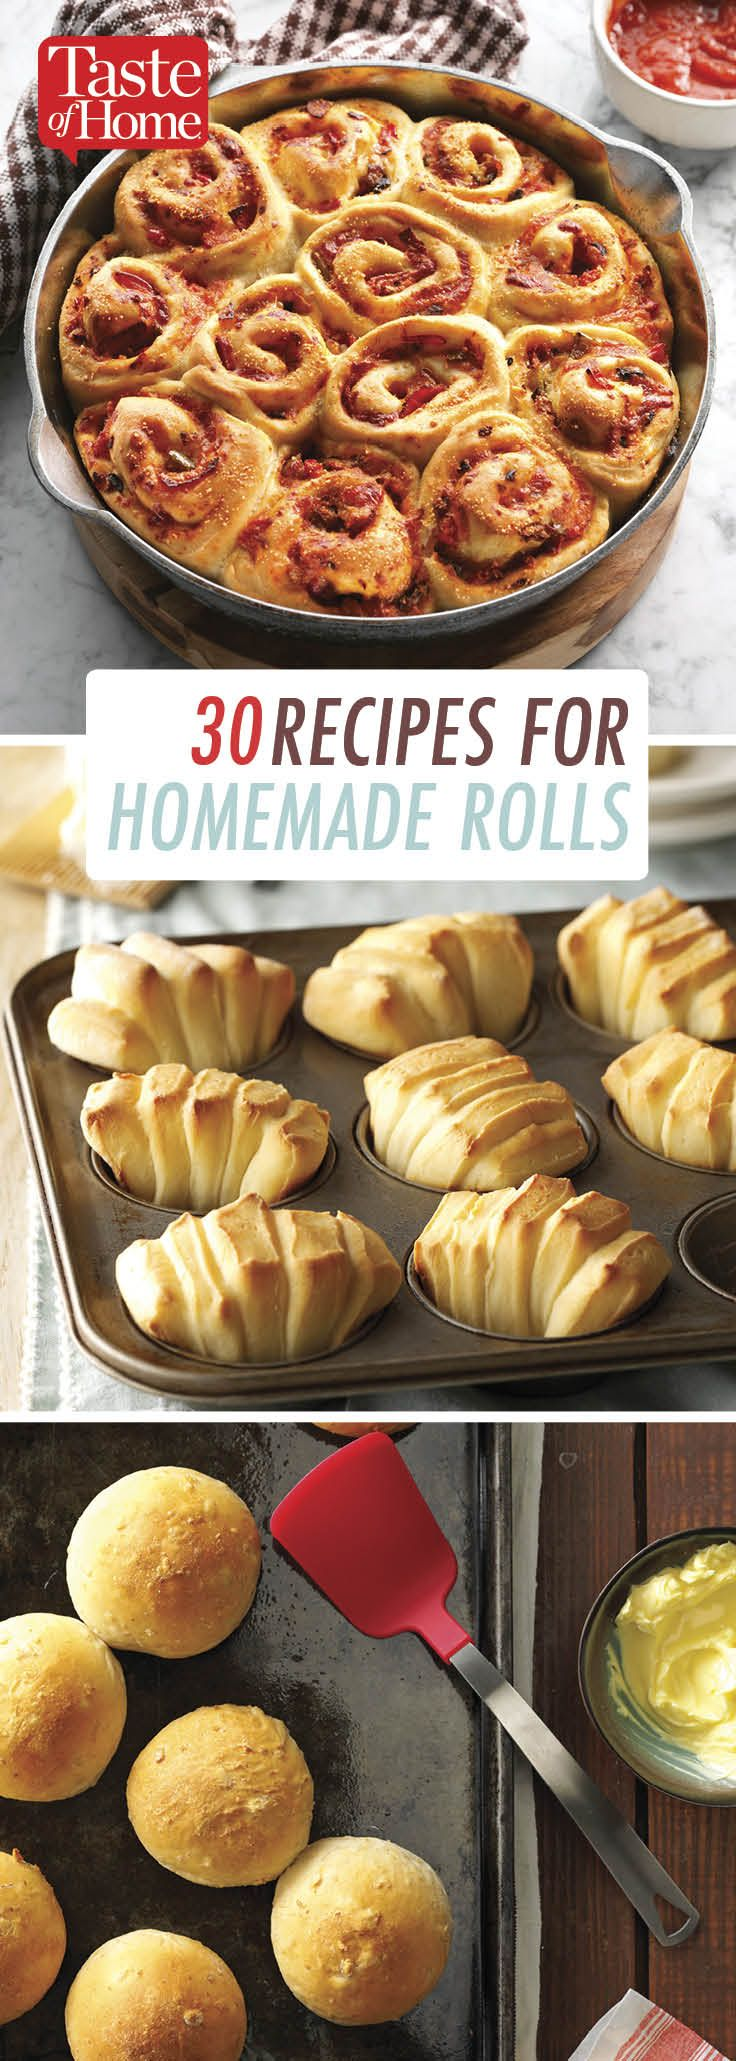 30 Homemade Roll Recipes That are Sure to Please